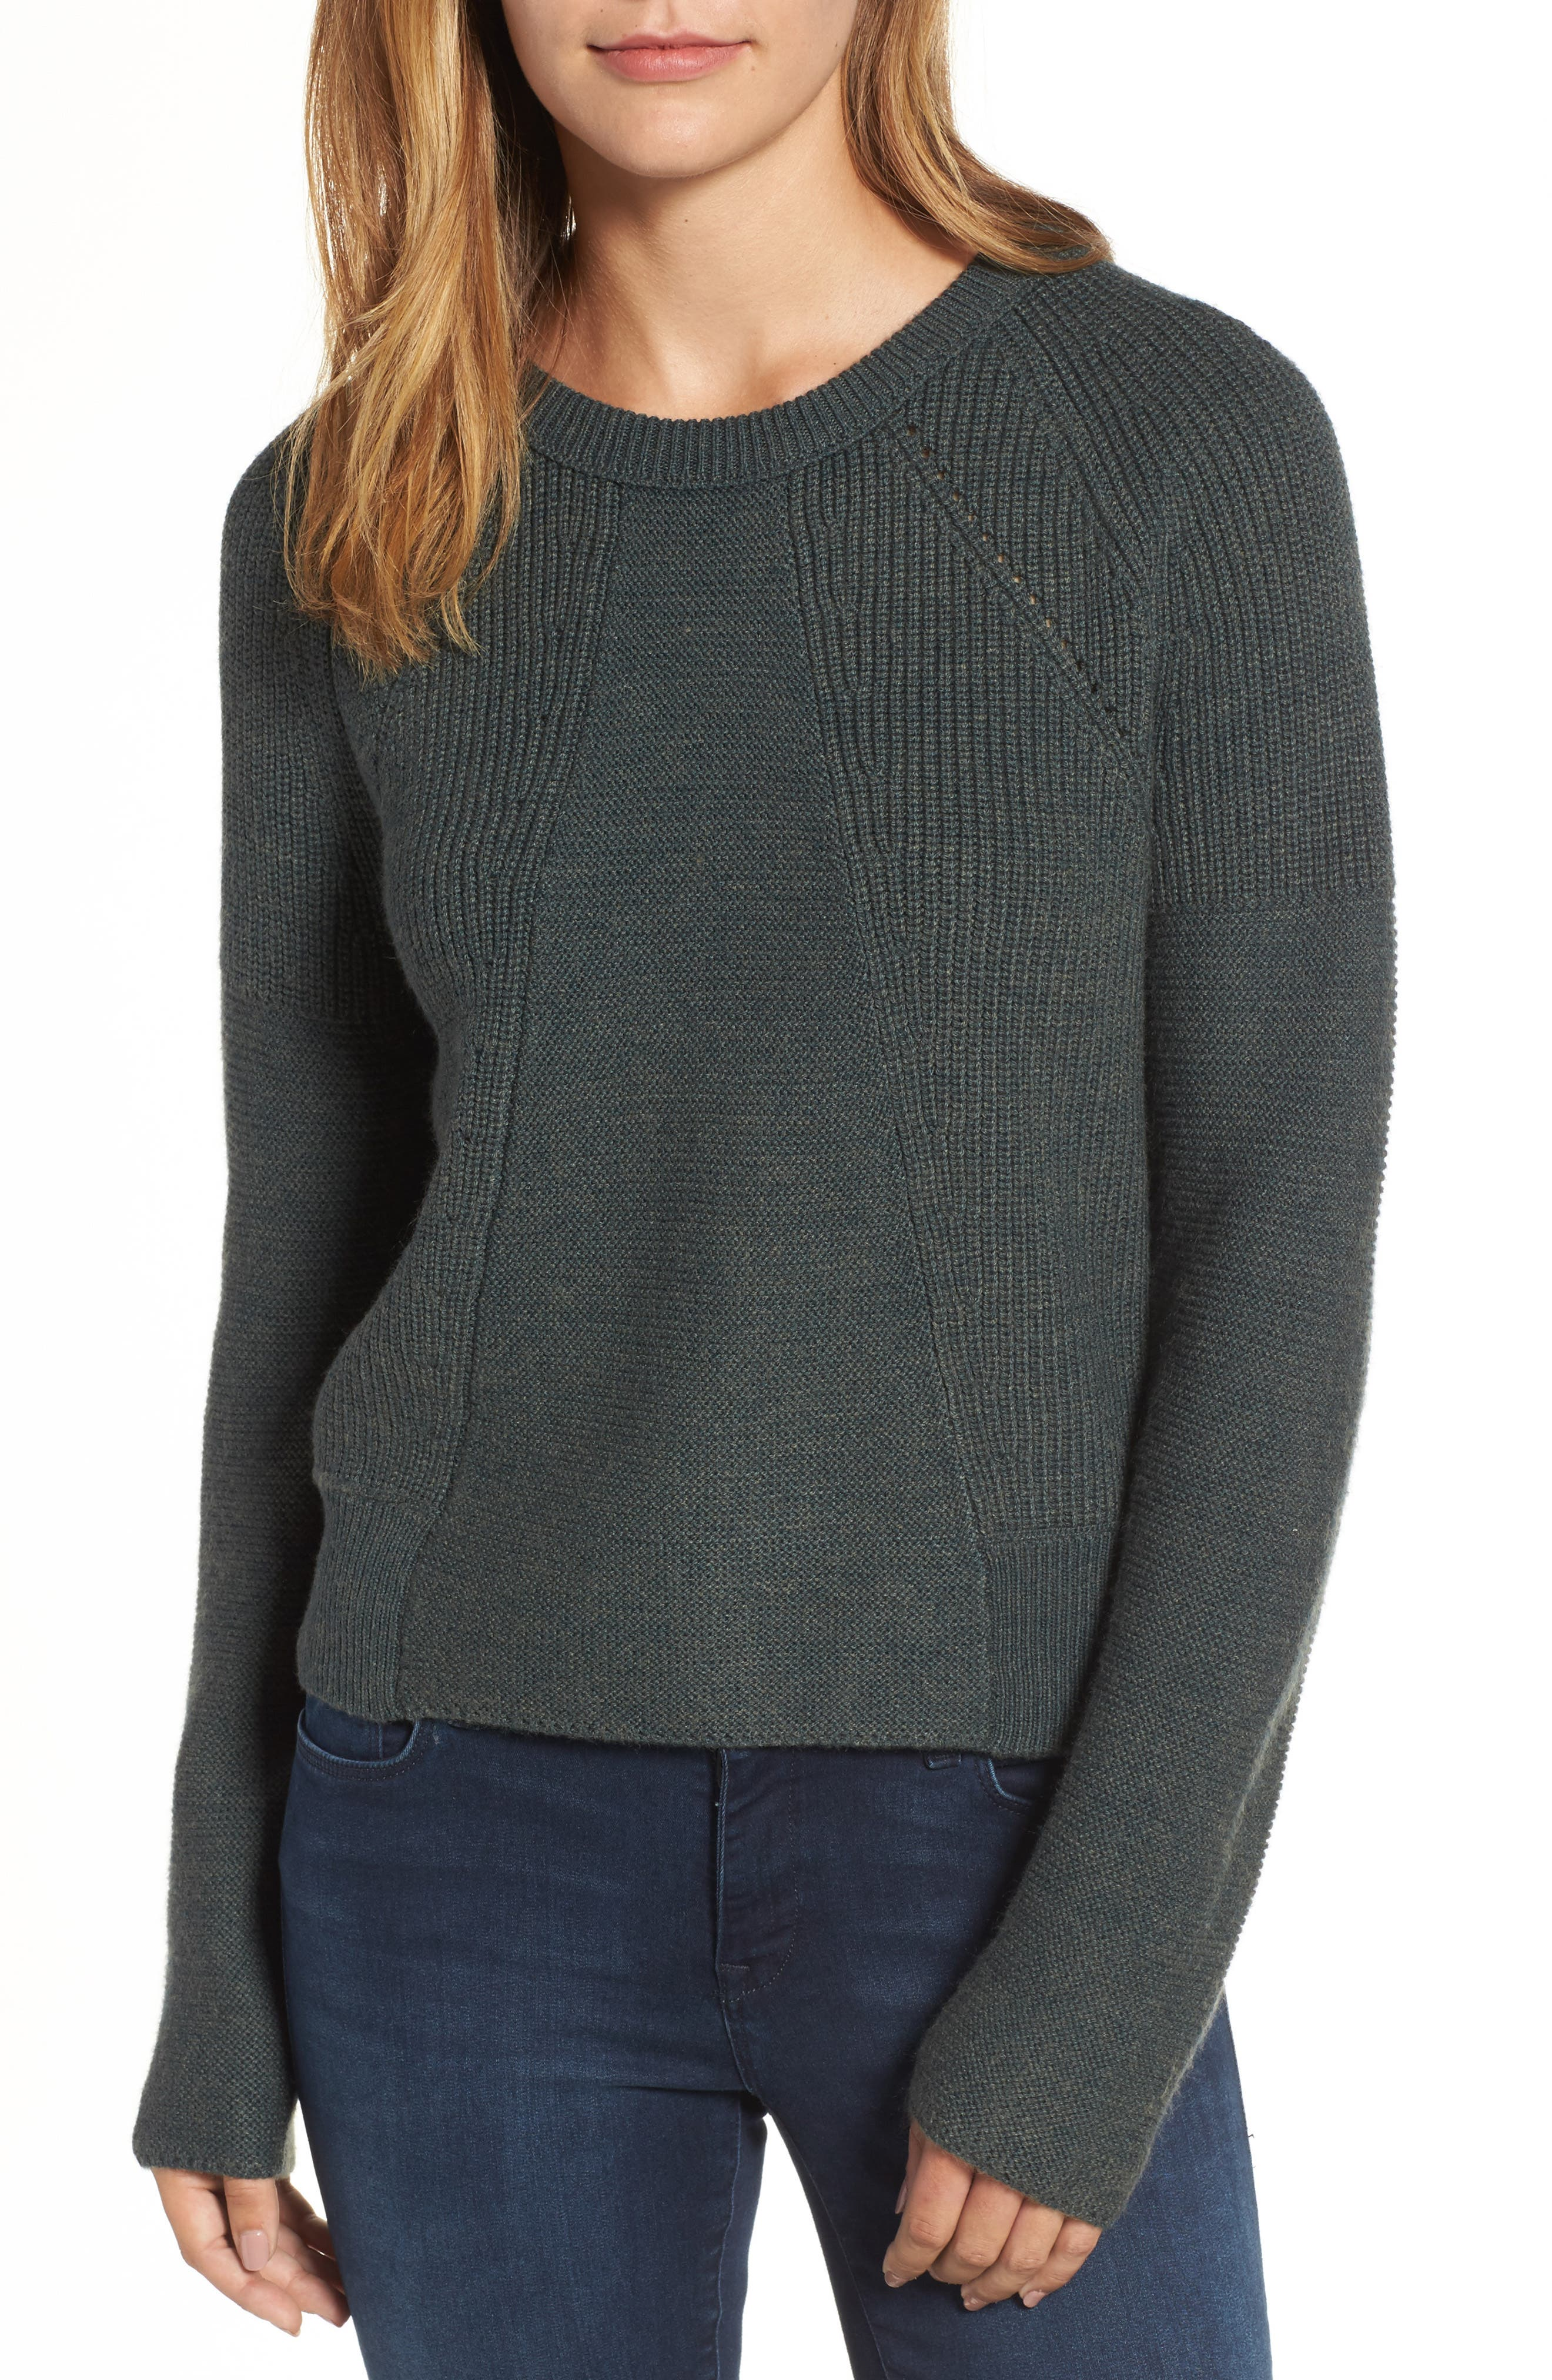 Engineered Stitch Sweater,                             Main thumbnail 1, color,                             Military